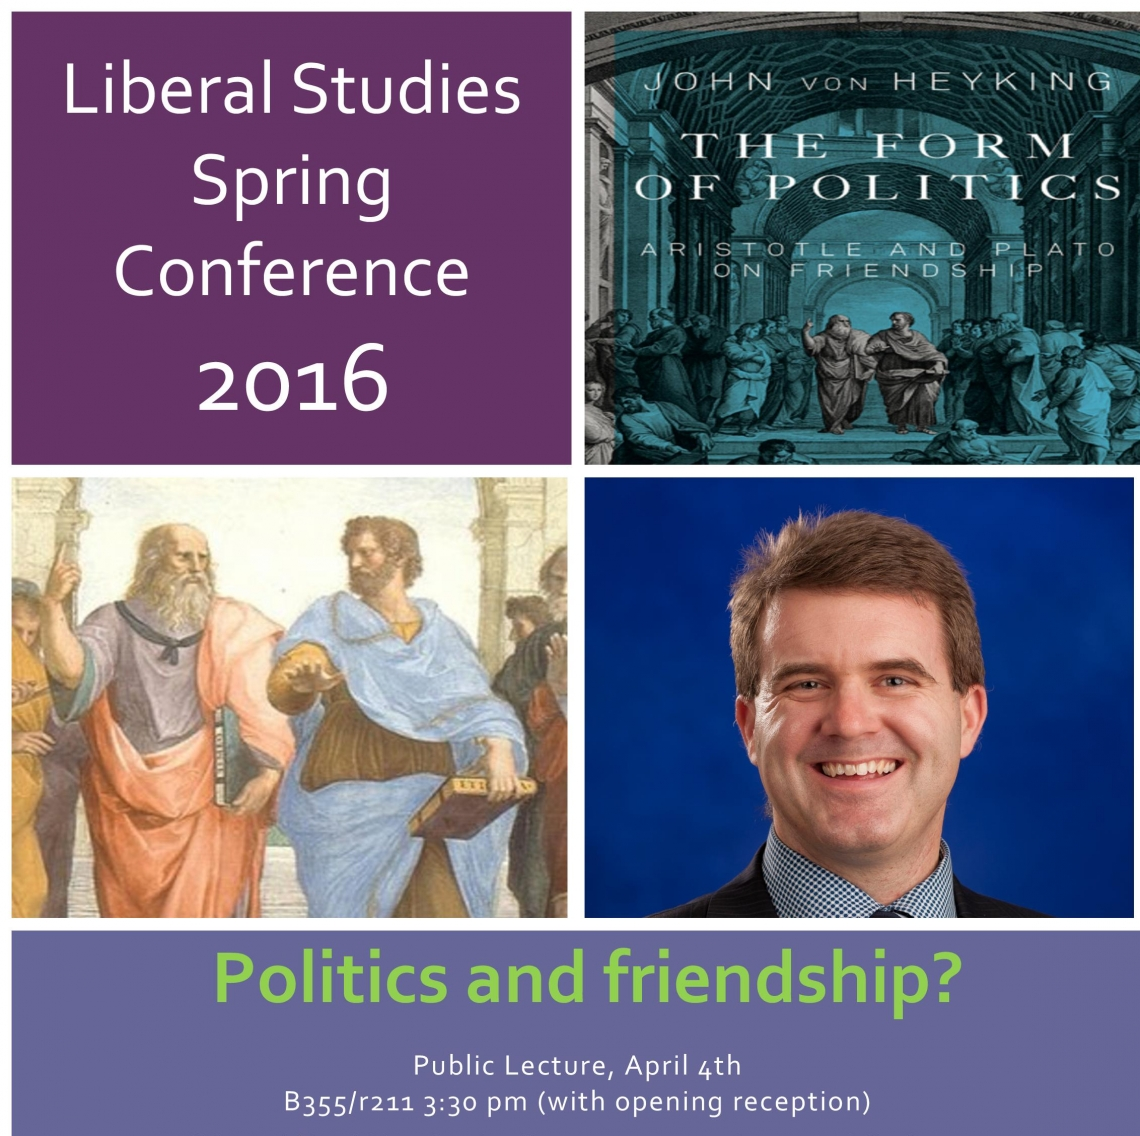 VIU Liberal Studies Spring Conference 2016